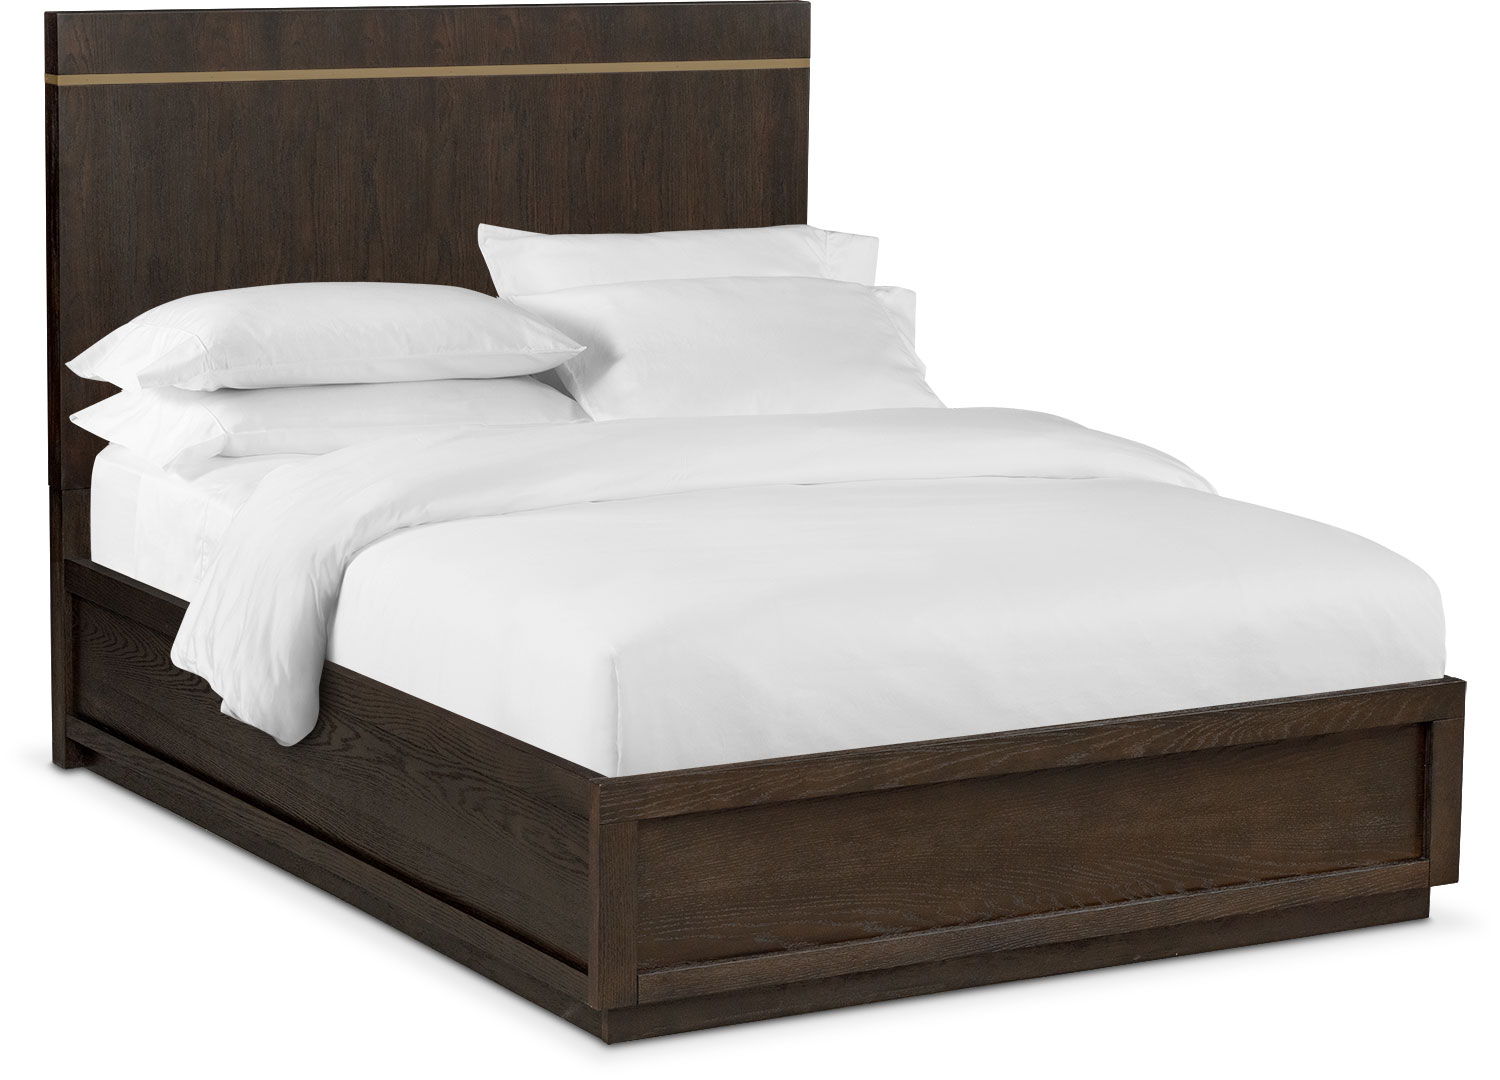 Shop All King Beds Value City Furniture and Mattresses